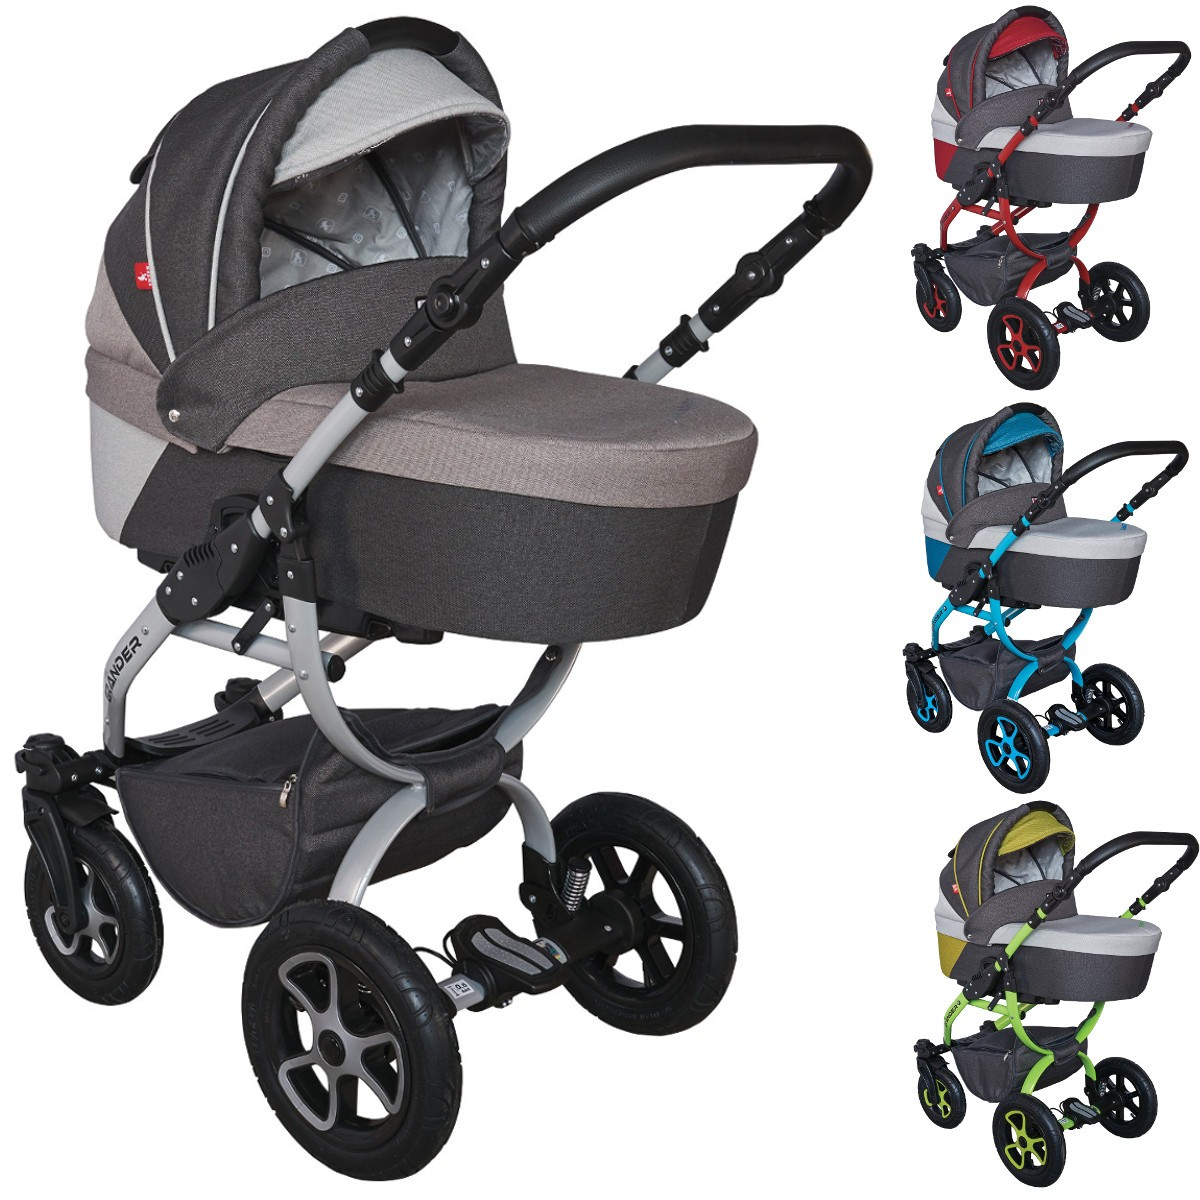 tutek grander lift kombi kinderwagen 2in1 mit babywanne sportwagenaufsatz buggy oder 3in1. Black Bedroom Furniture Sets. Home Design Ideas